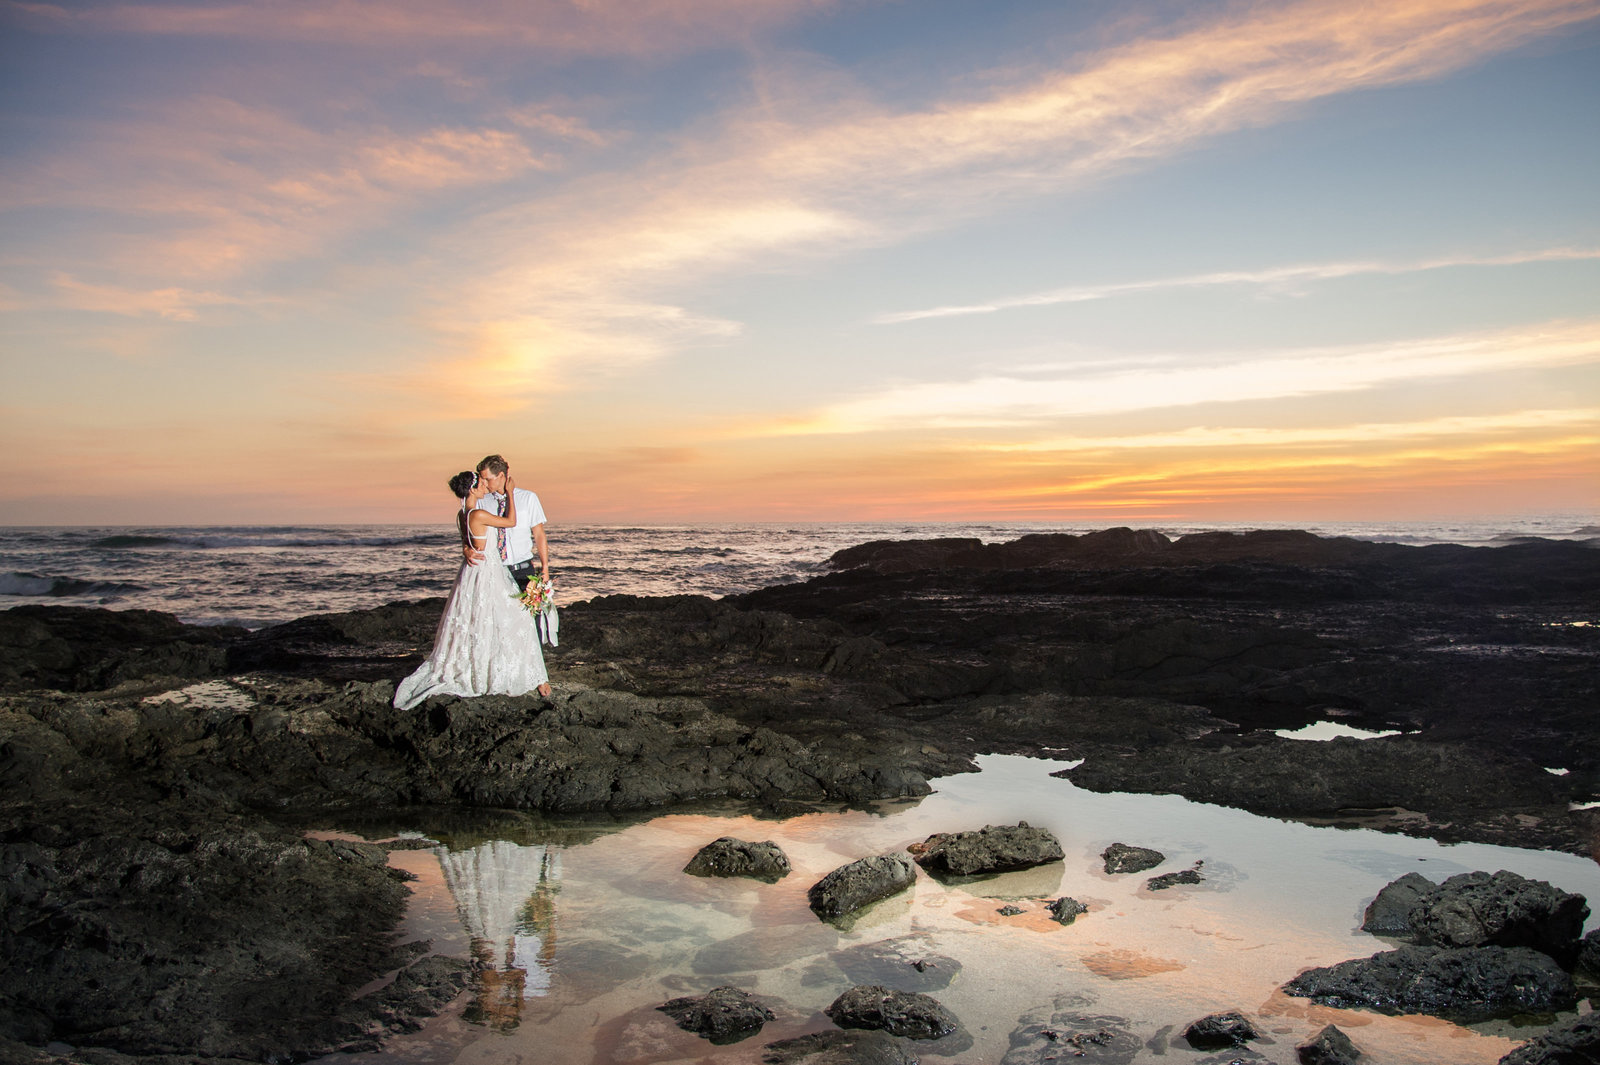 02-Destination Wedding Photography - Costa Rica Wedding Photographers - 13